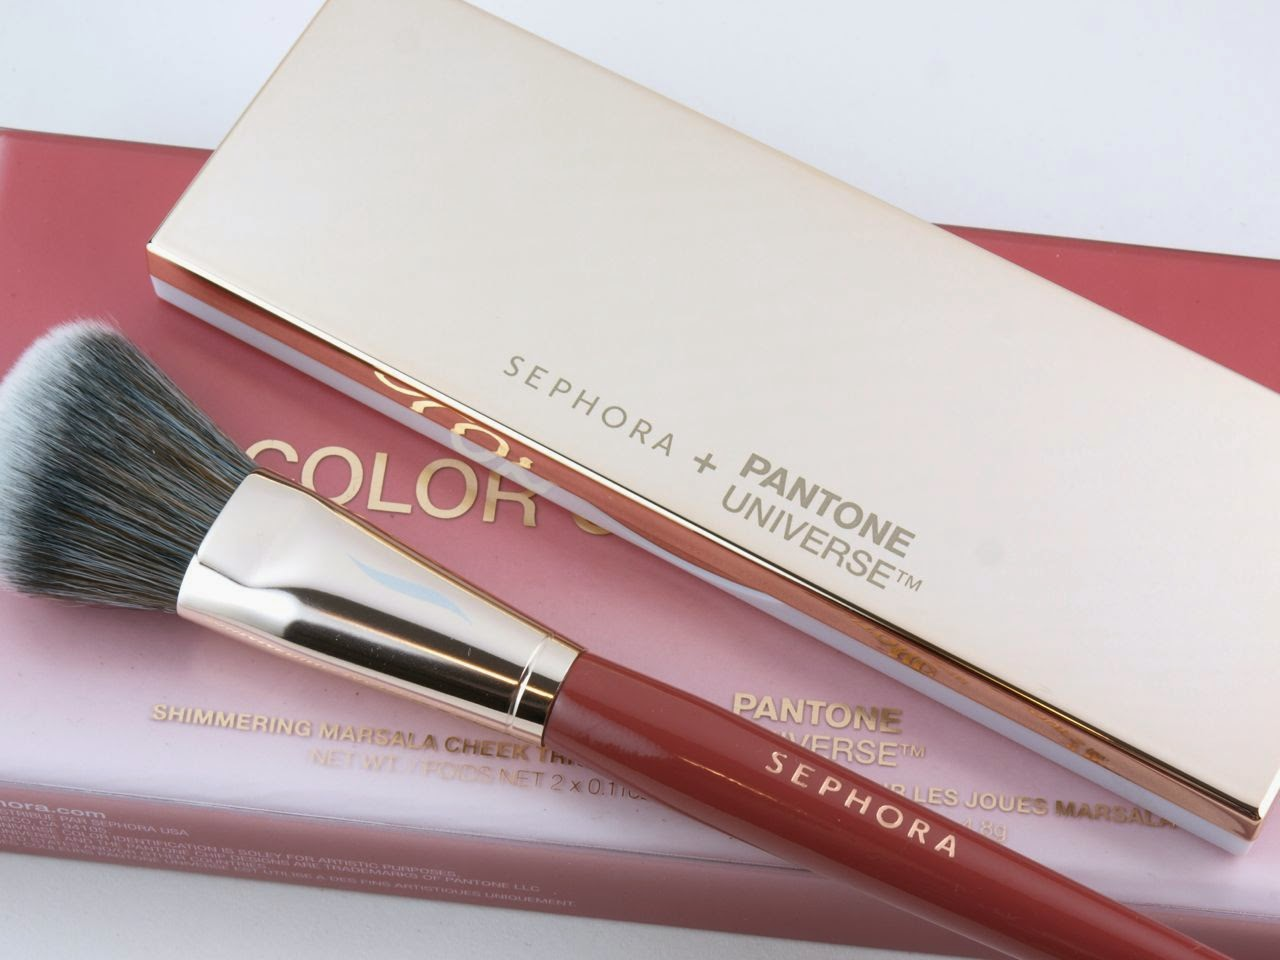 Sephora Pantone Color of the Year 2015 Marsala Collection: Review and Swatches